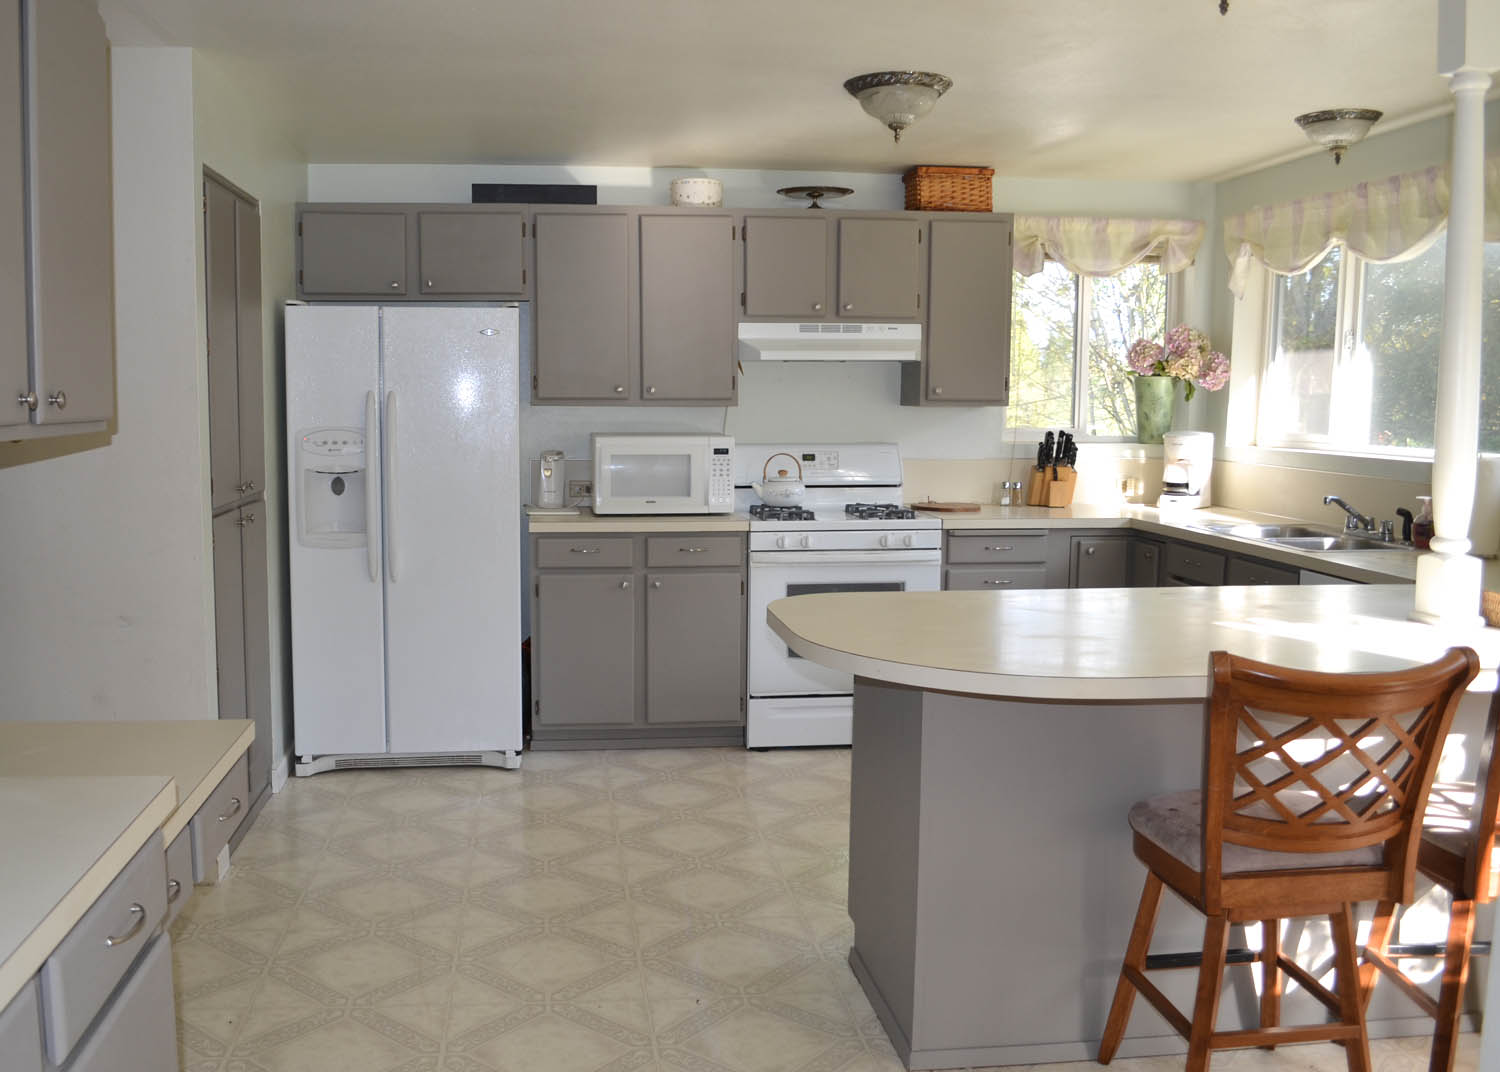 Modern Painting Kitchen Cabinets Decoration (Image 6 of 10)